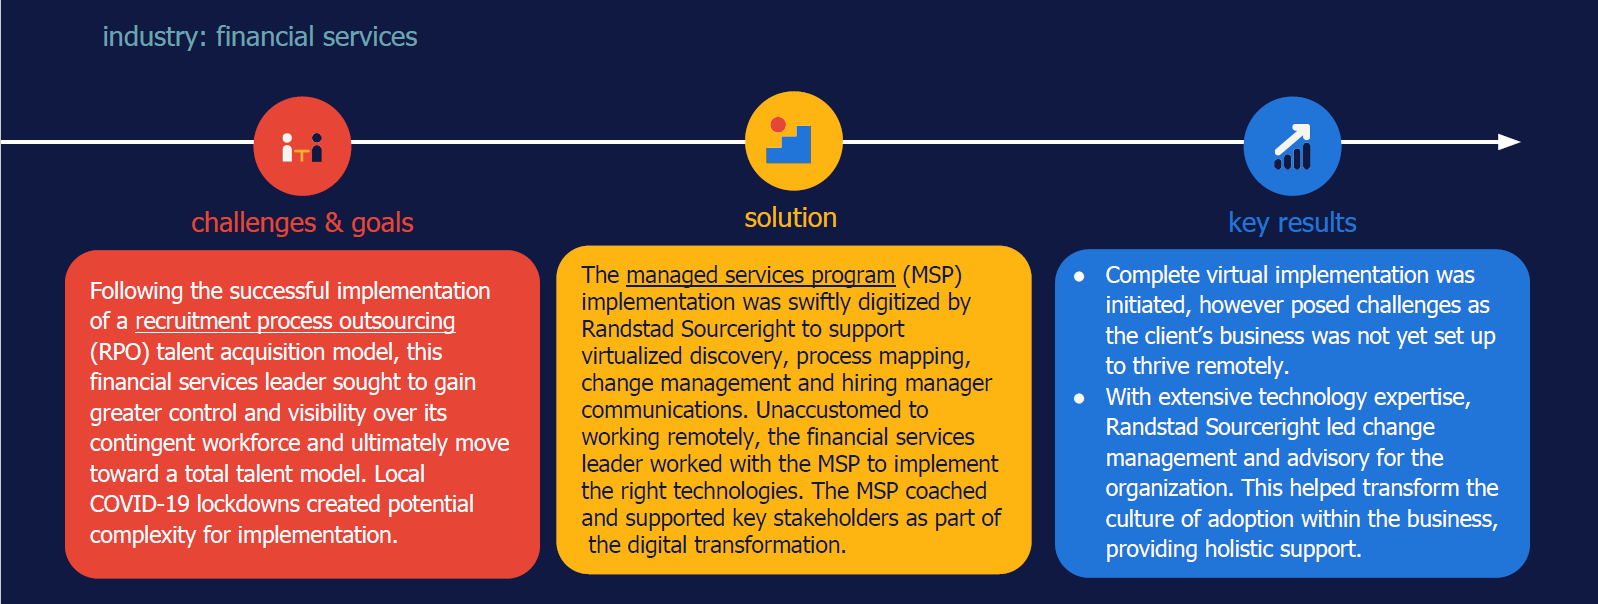 Randstad Sourceright virtual MSP implementation case study